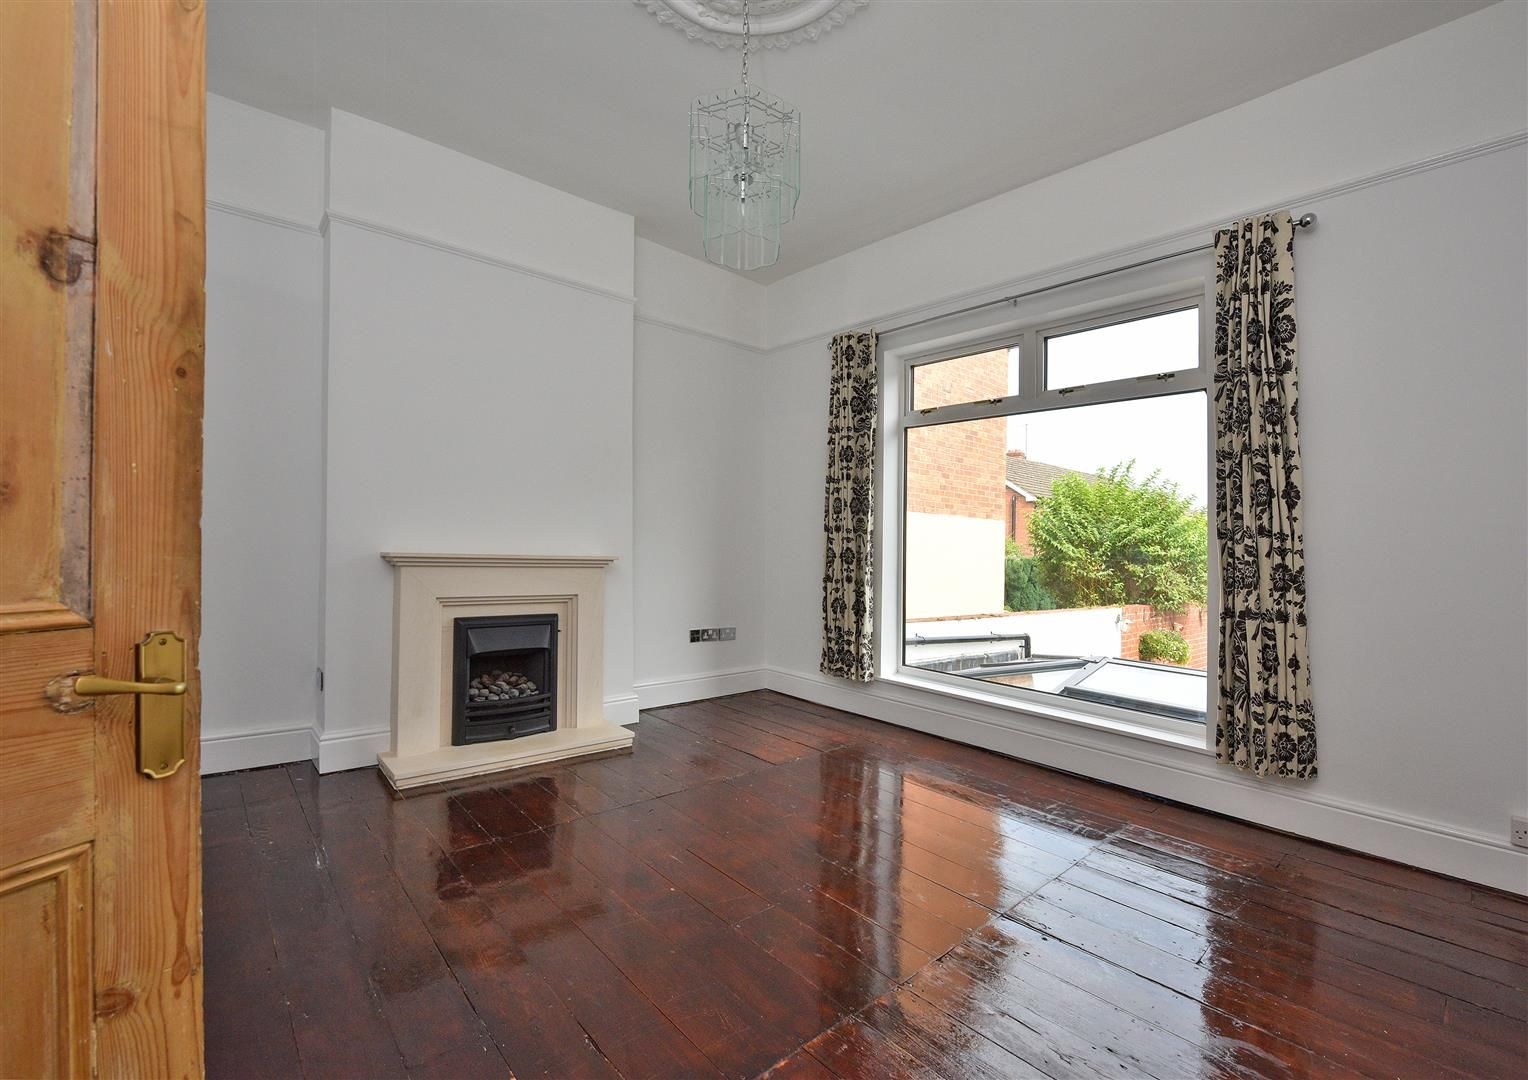 4 bed semi-detached for sale in Old Quarter 5